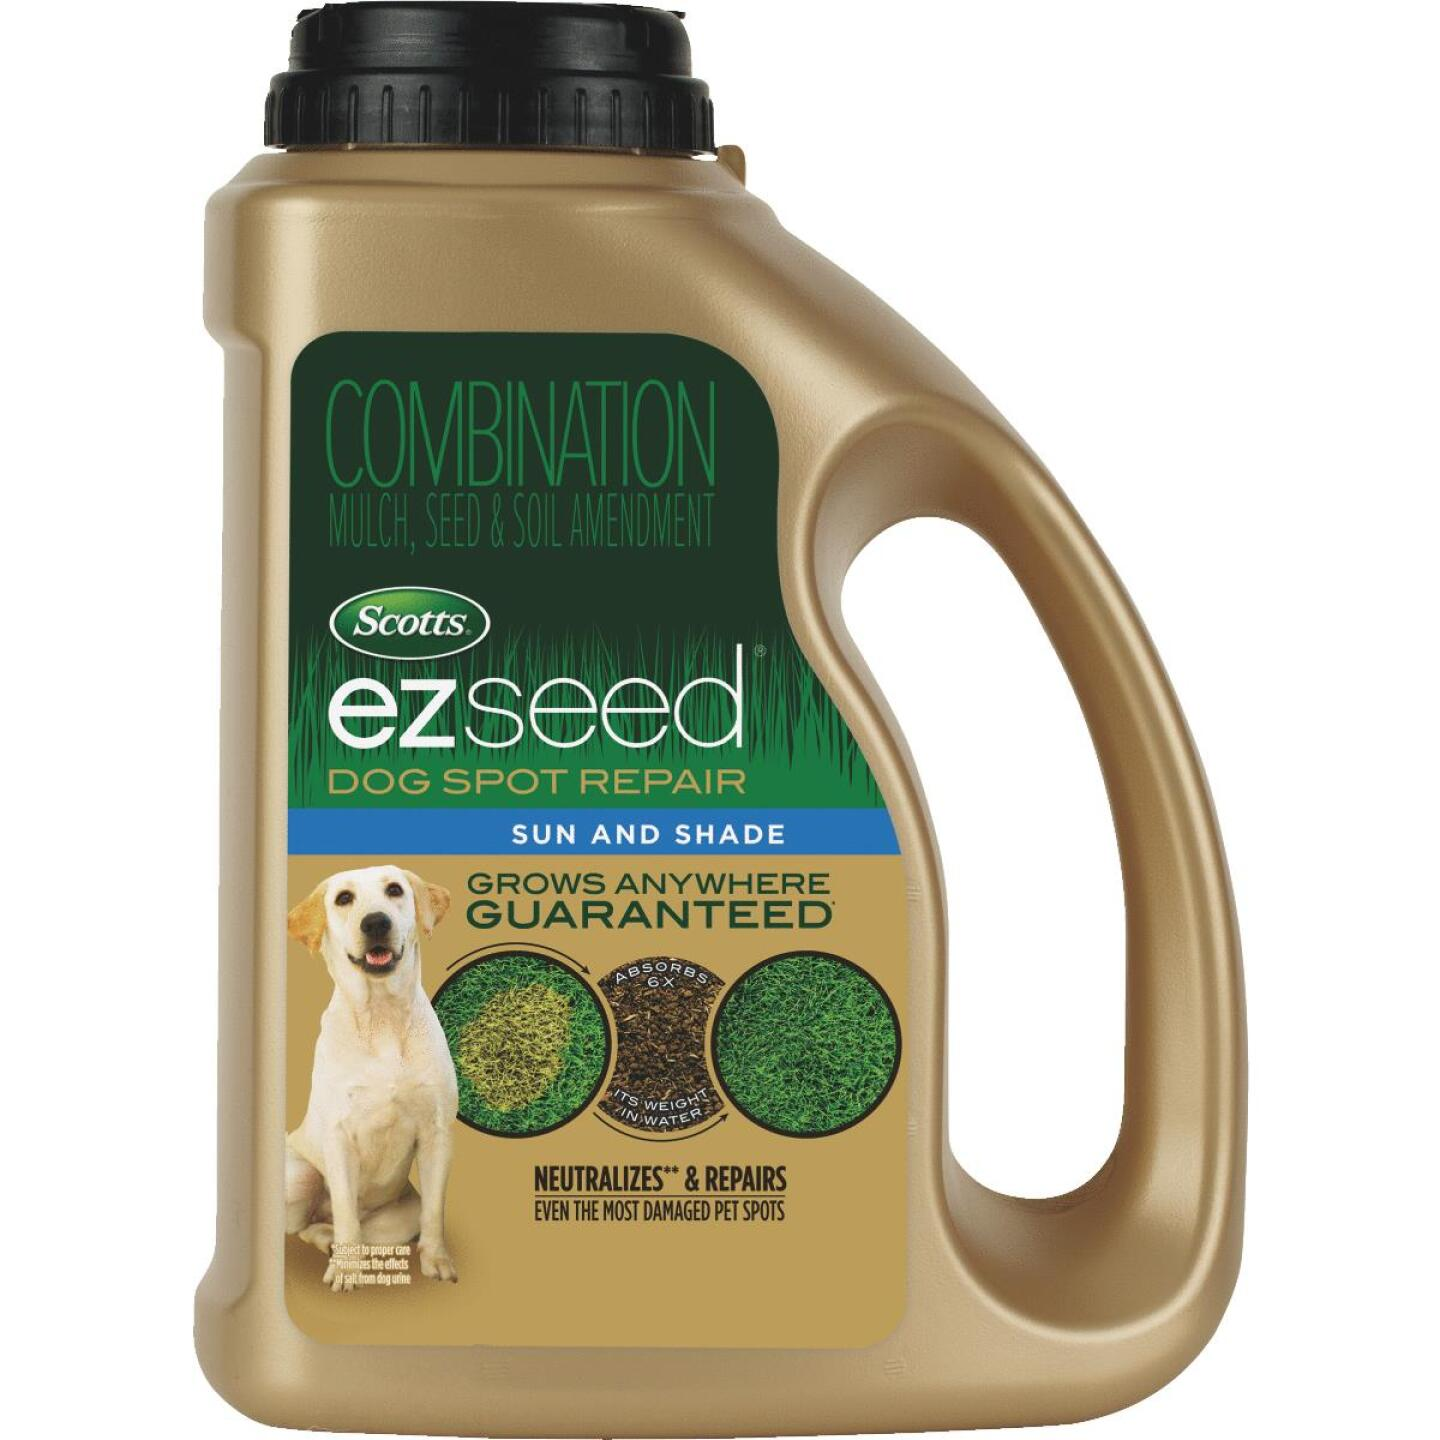 Scotts eZ Seed 2 Lb. Covers Up to 100 Dog Spots Sun & Shade Grass Patch & Repair Image 1